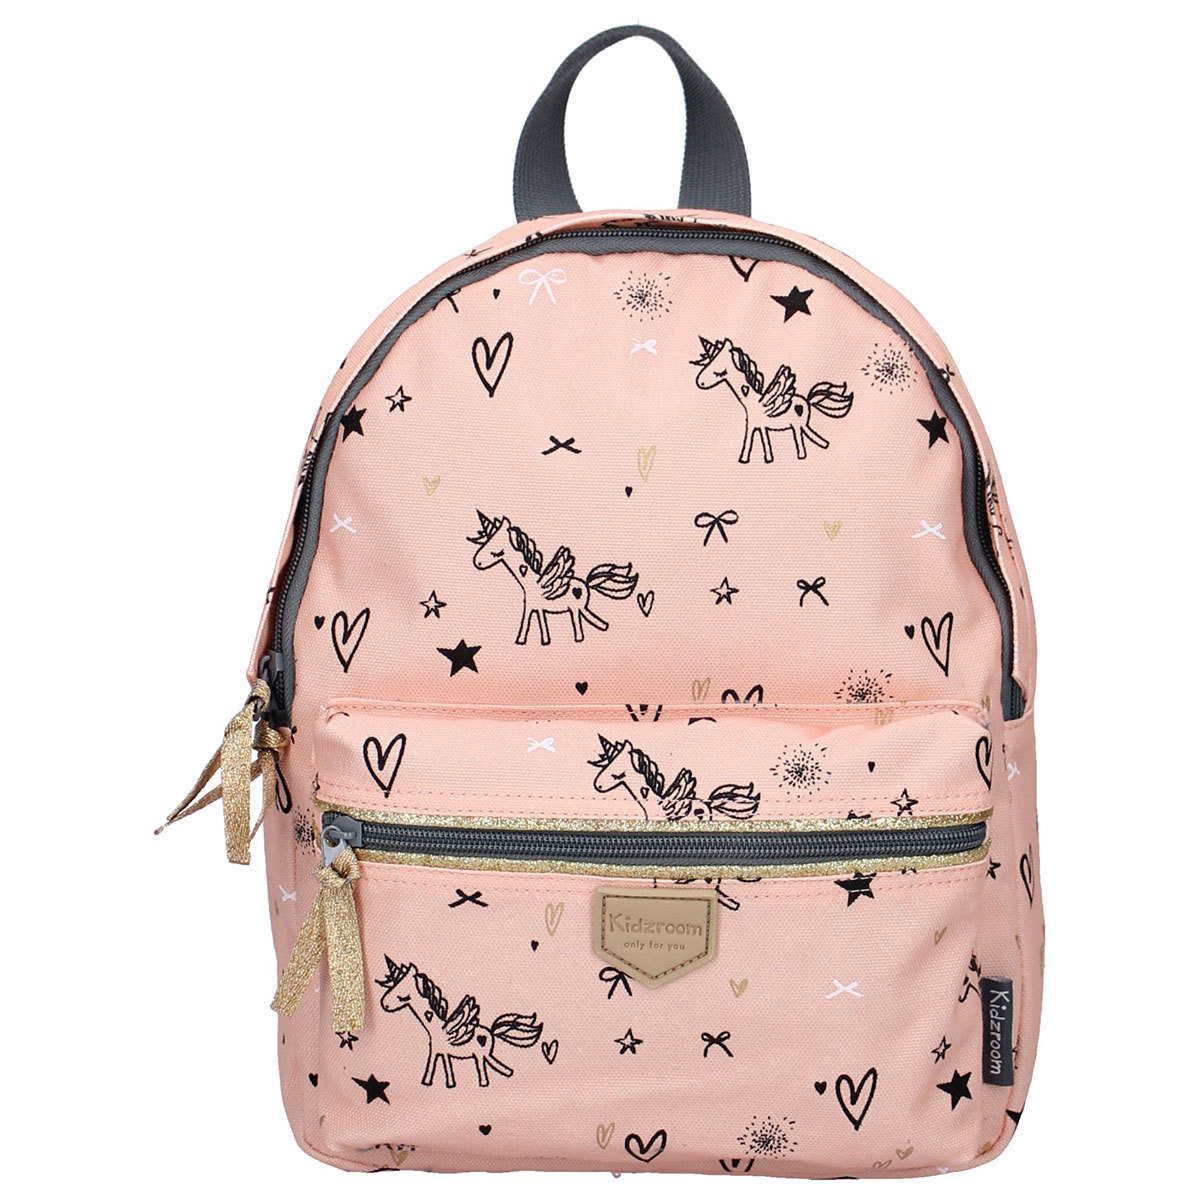 Bagagerie enfant Fearless - Sac à Dos Licorne - Rose Fearless - Sac à Dos Licorne - Rose